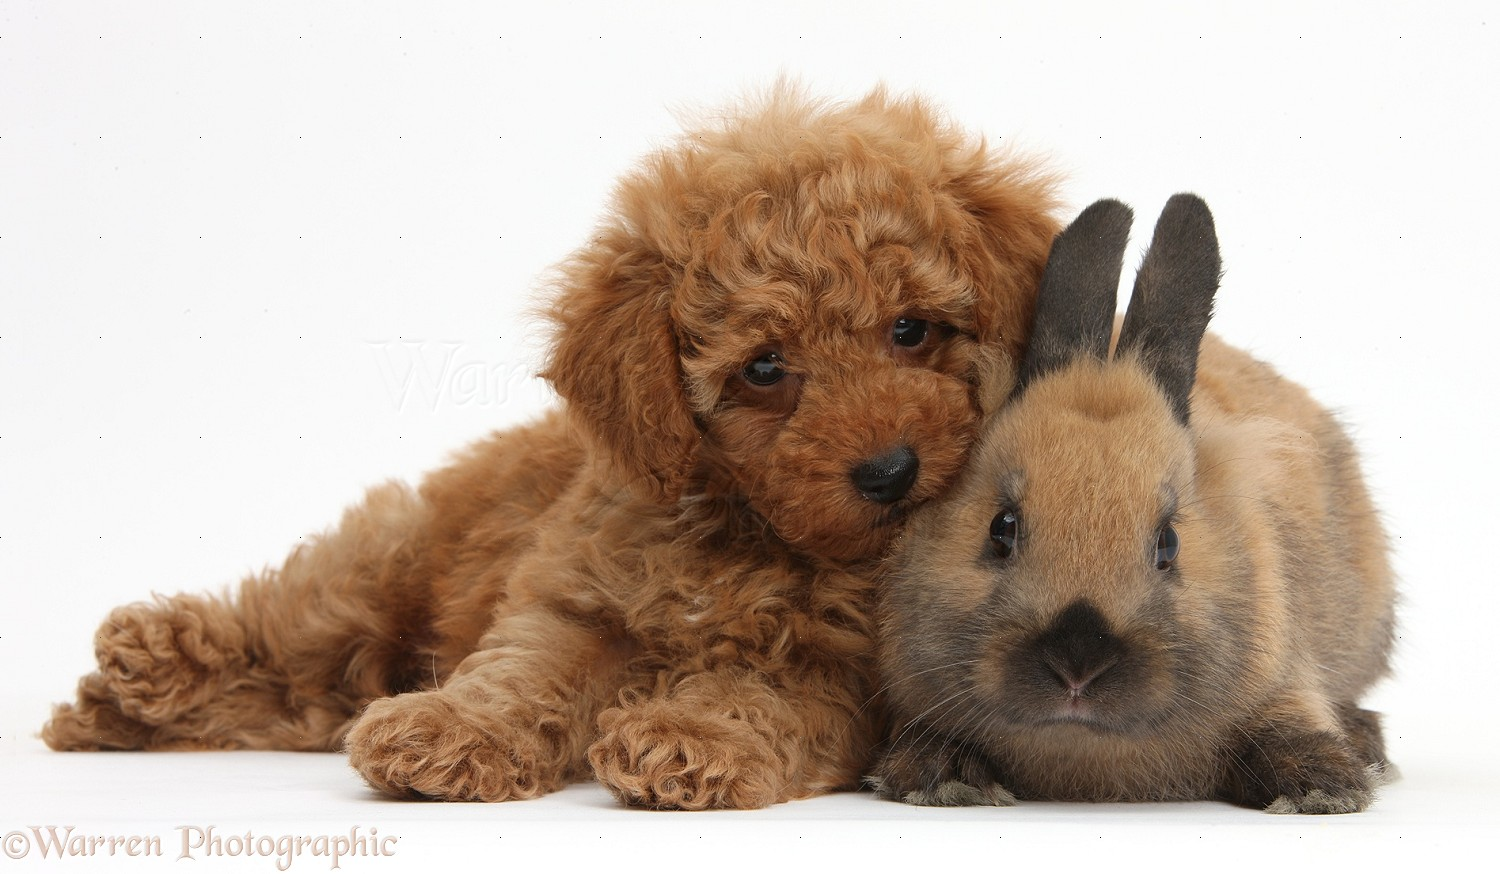 pets cute red toy poodle puppy and rabbit photo wp38700